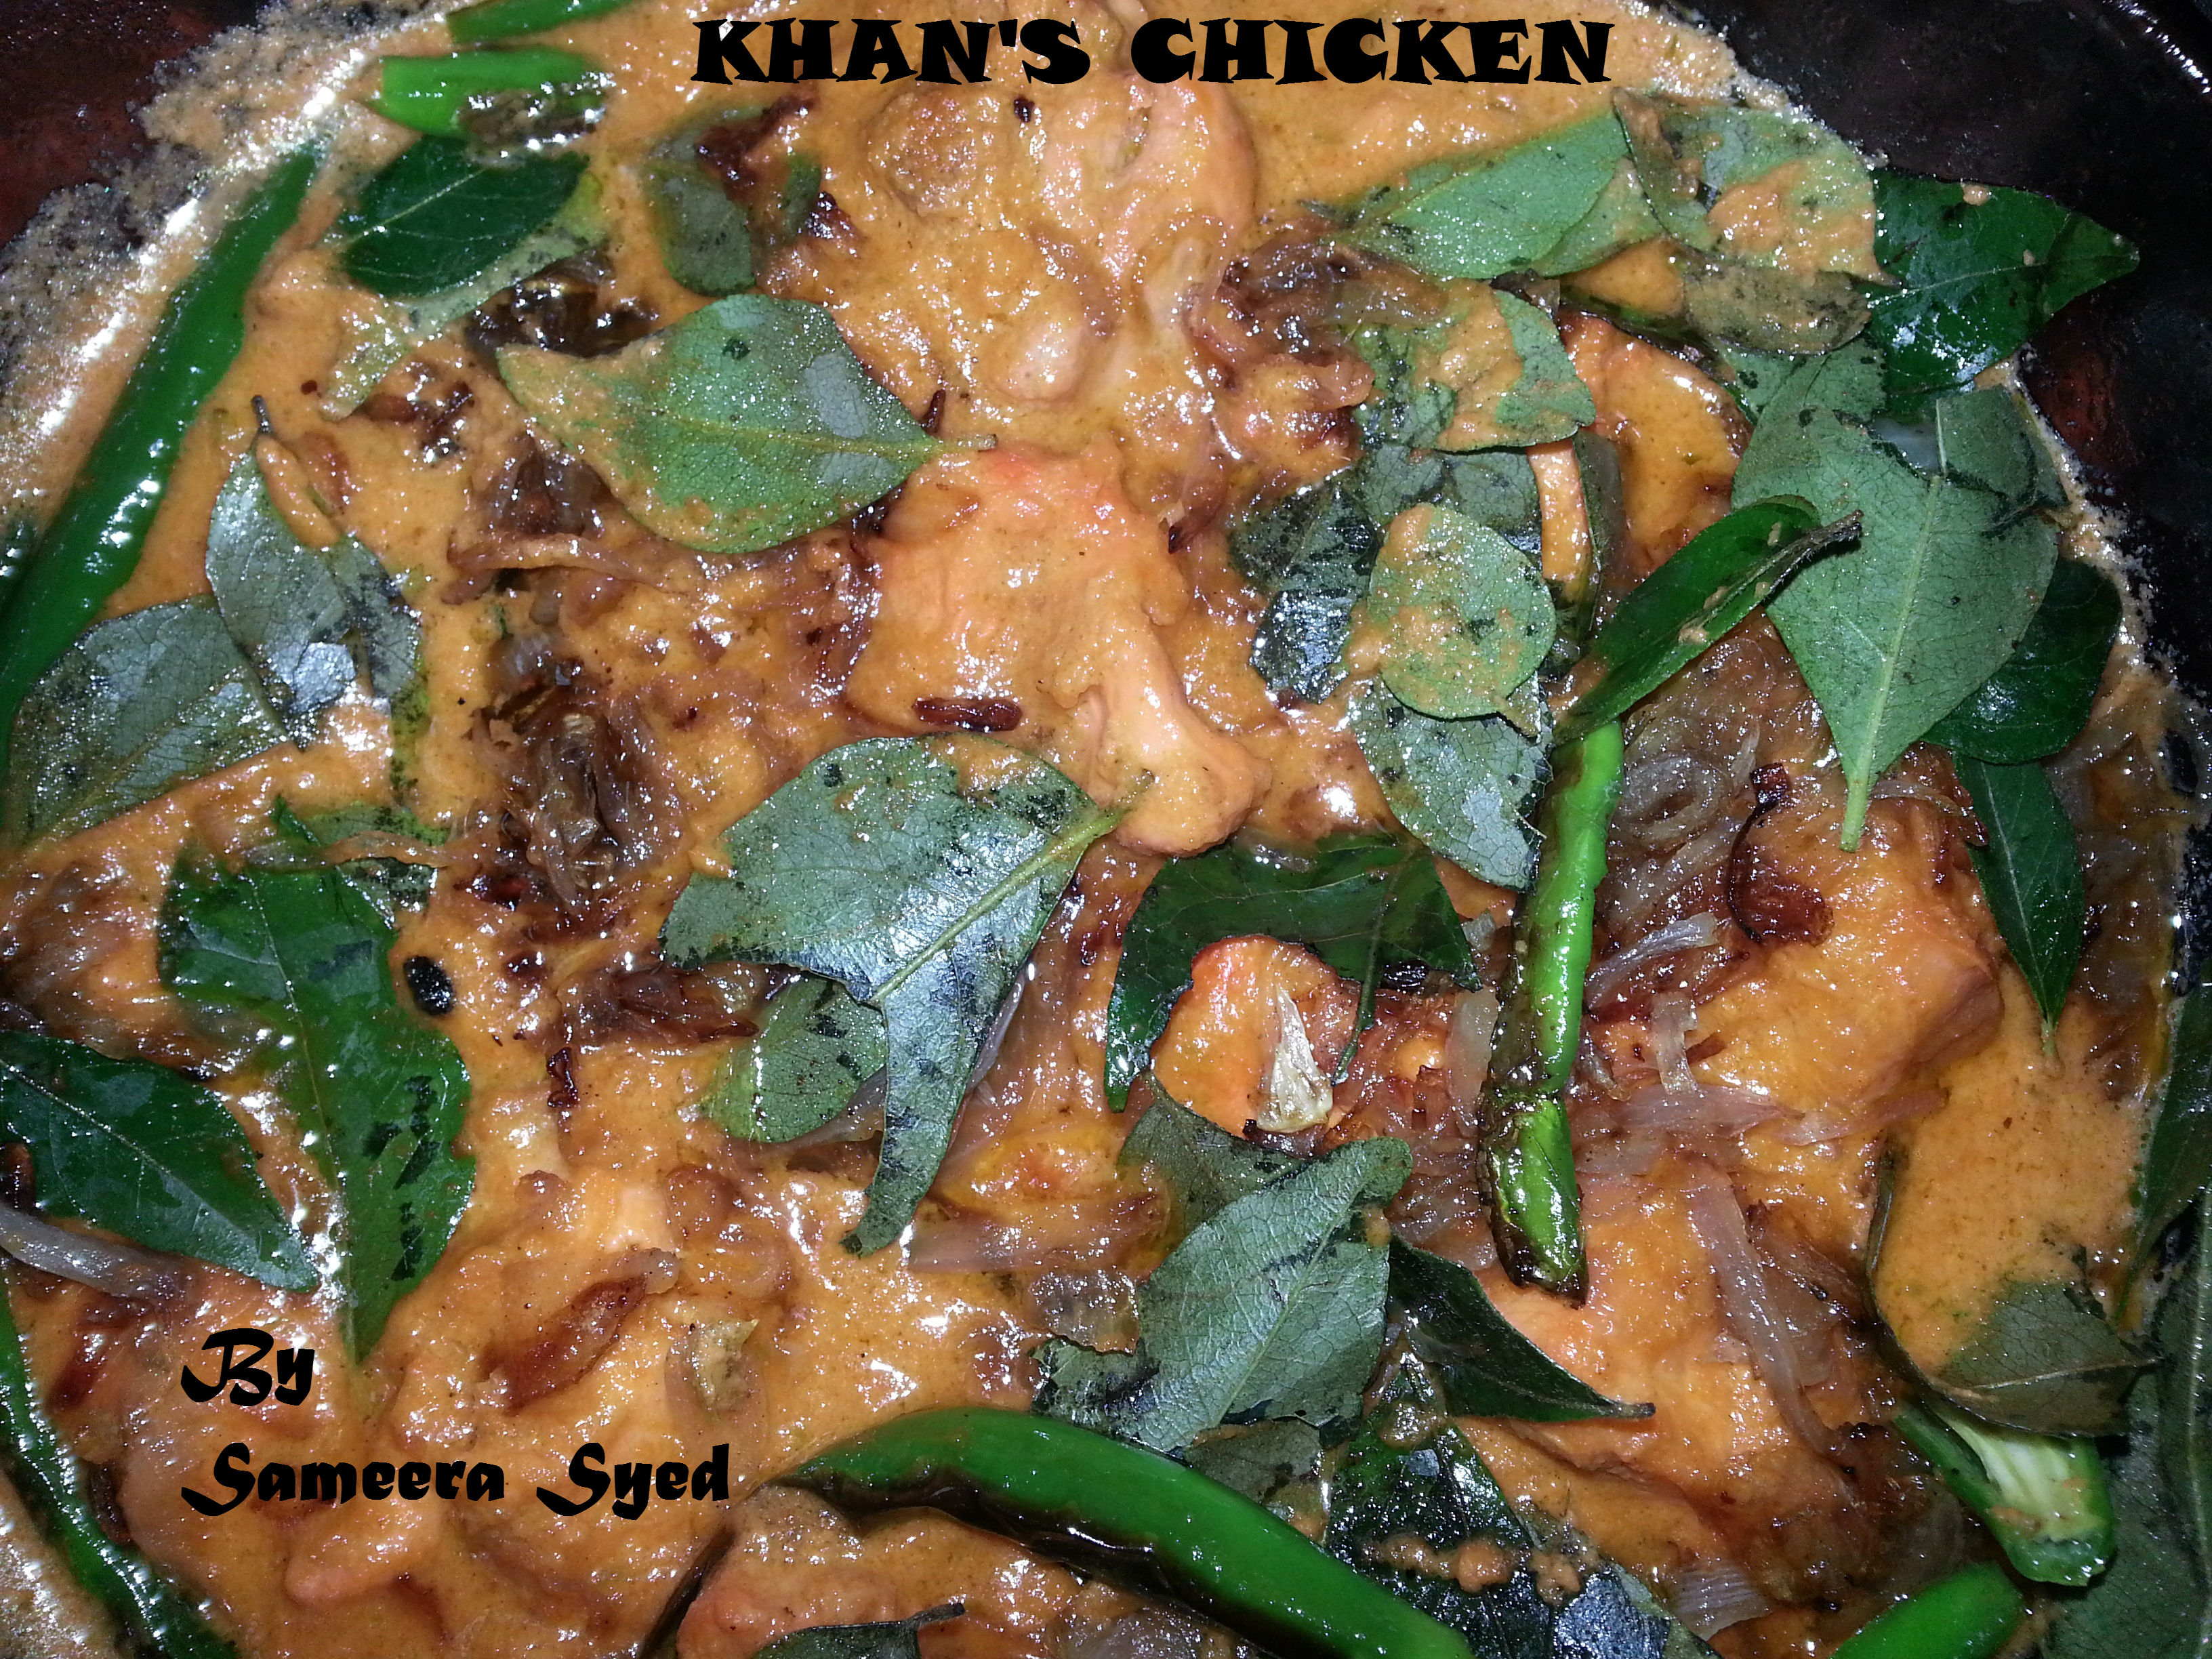 Khan's Chicken